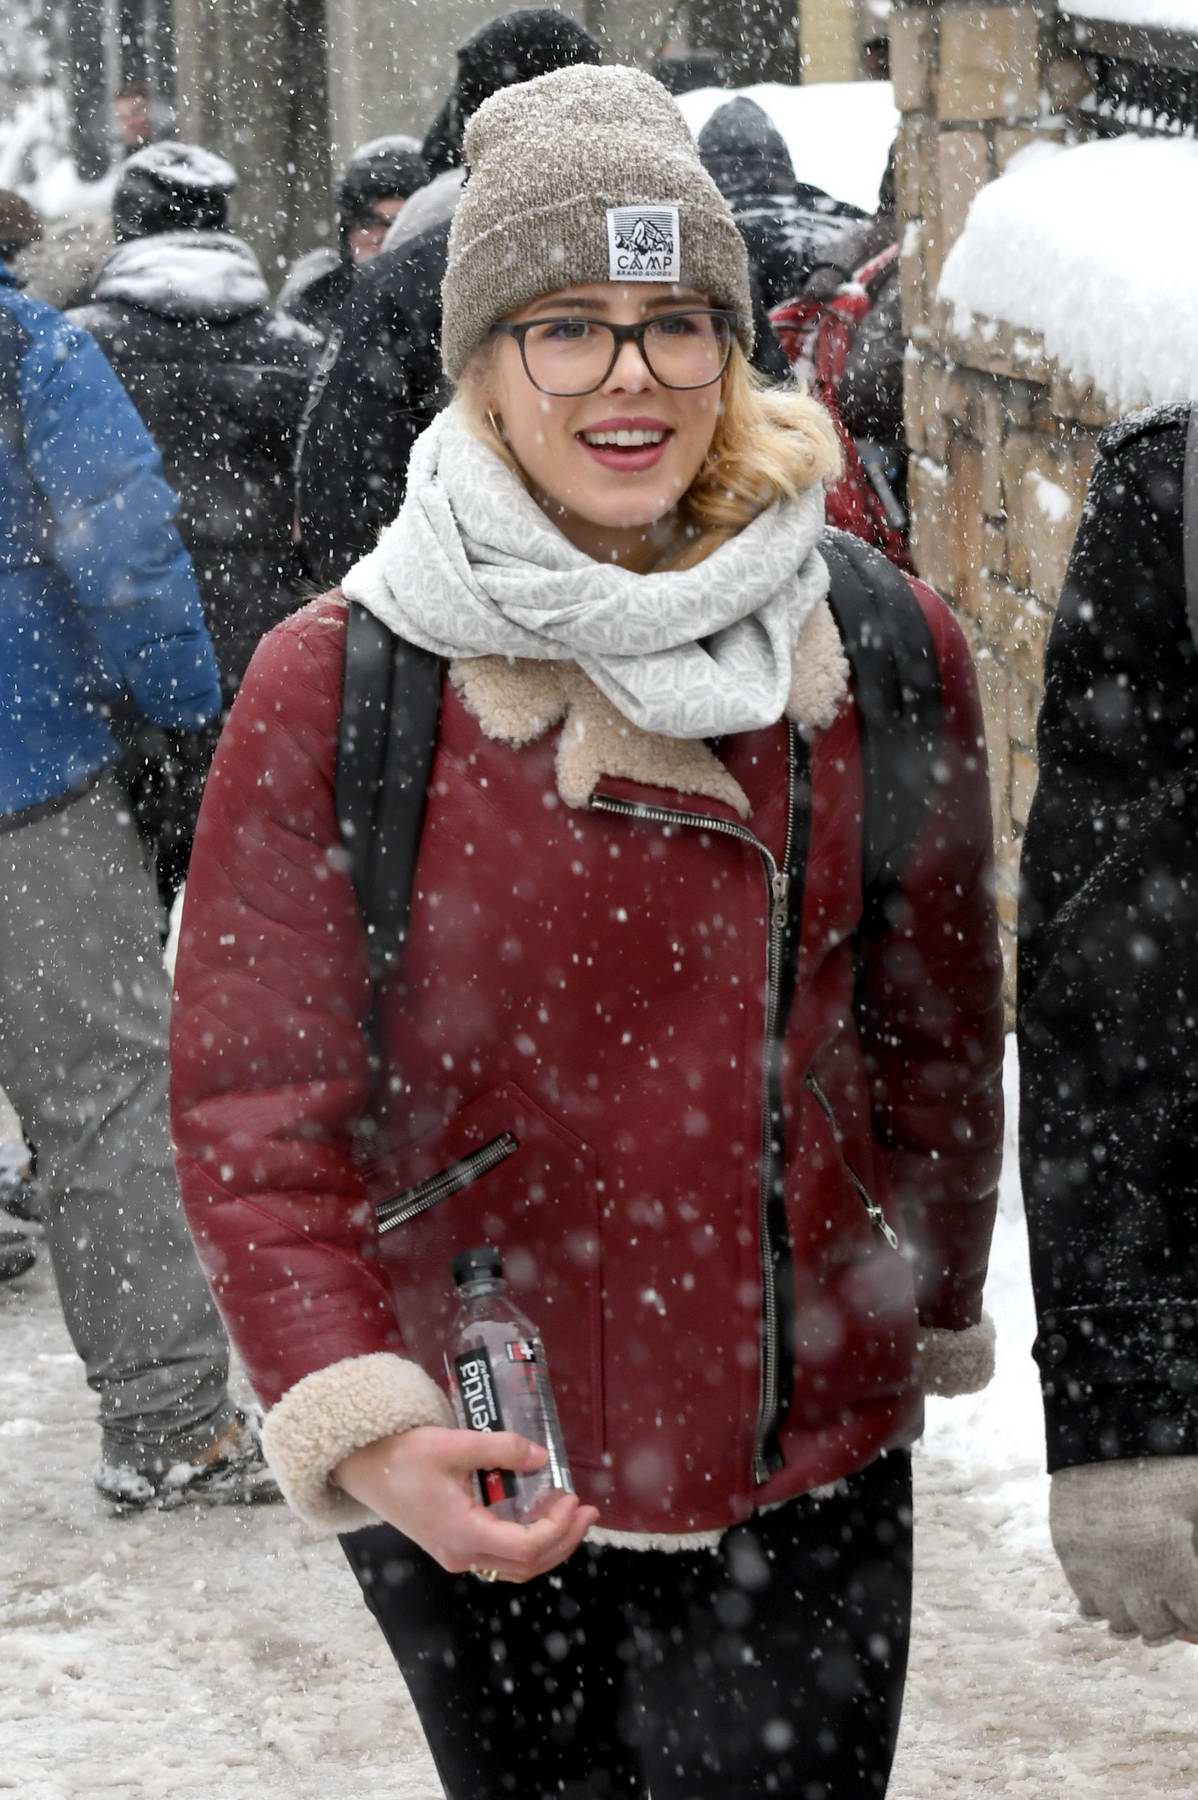 Emily Bett Rickards wore a beanie and fur lined jacket as she stroll around in snow in Park City, Utah